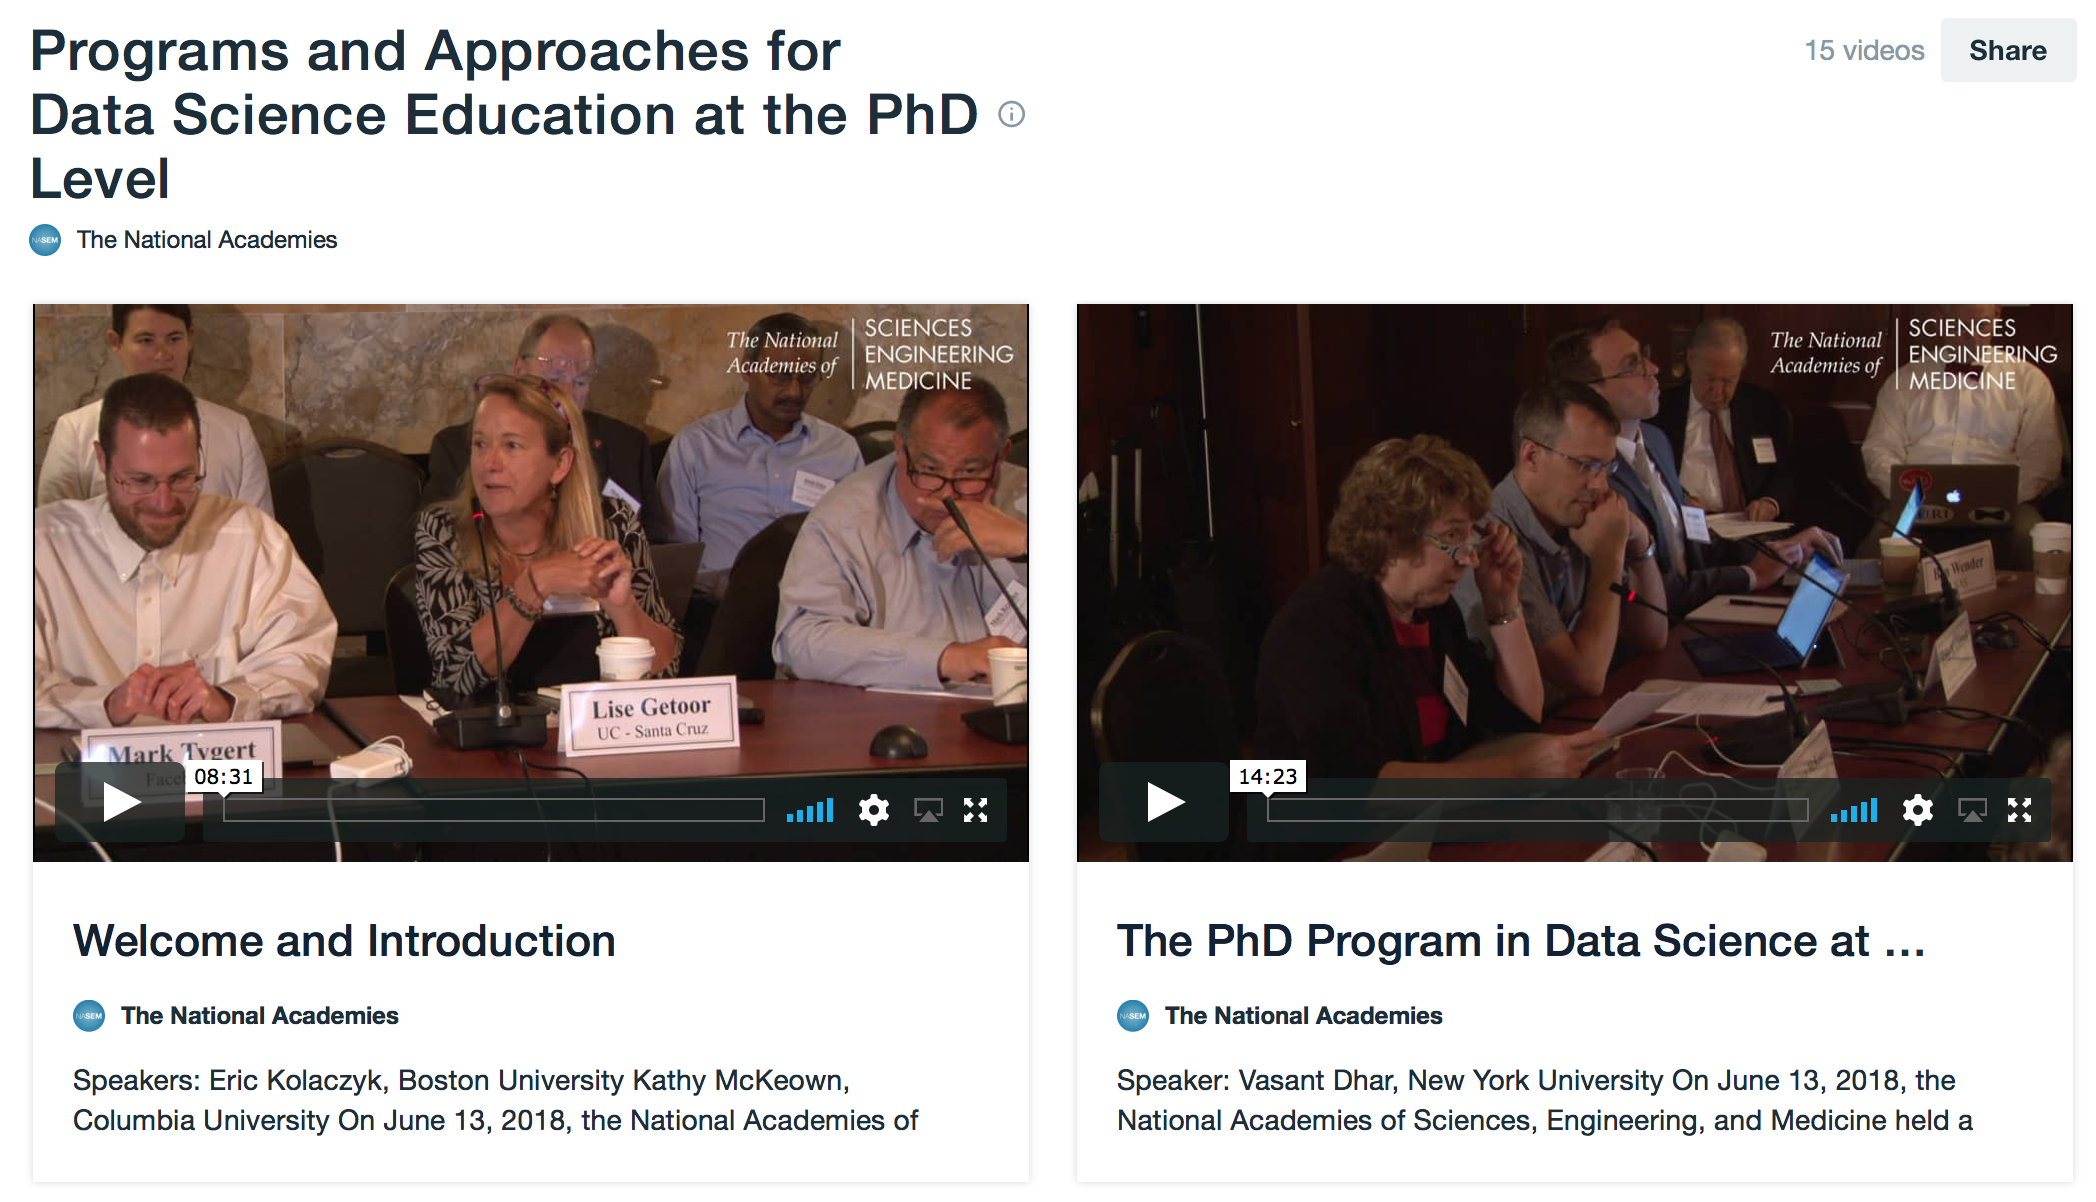 Programs and Approaches for Data Science Education at the PhD Level